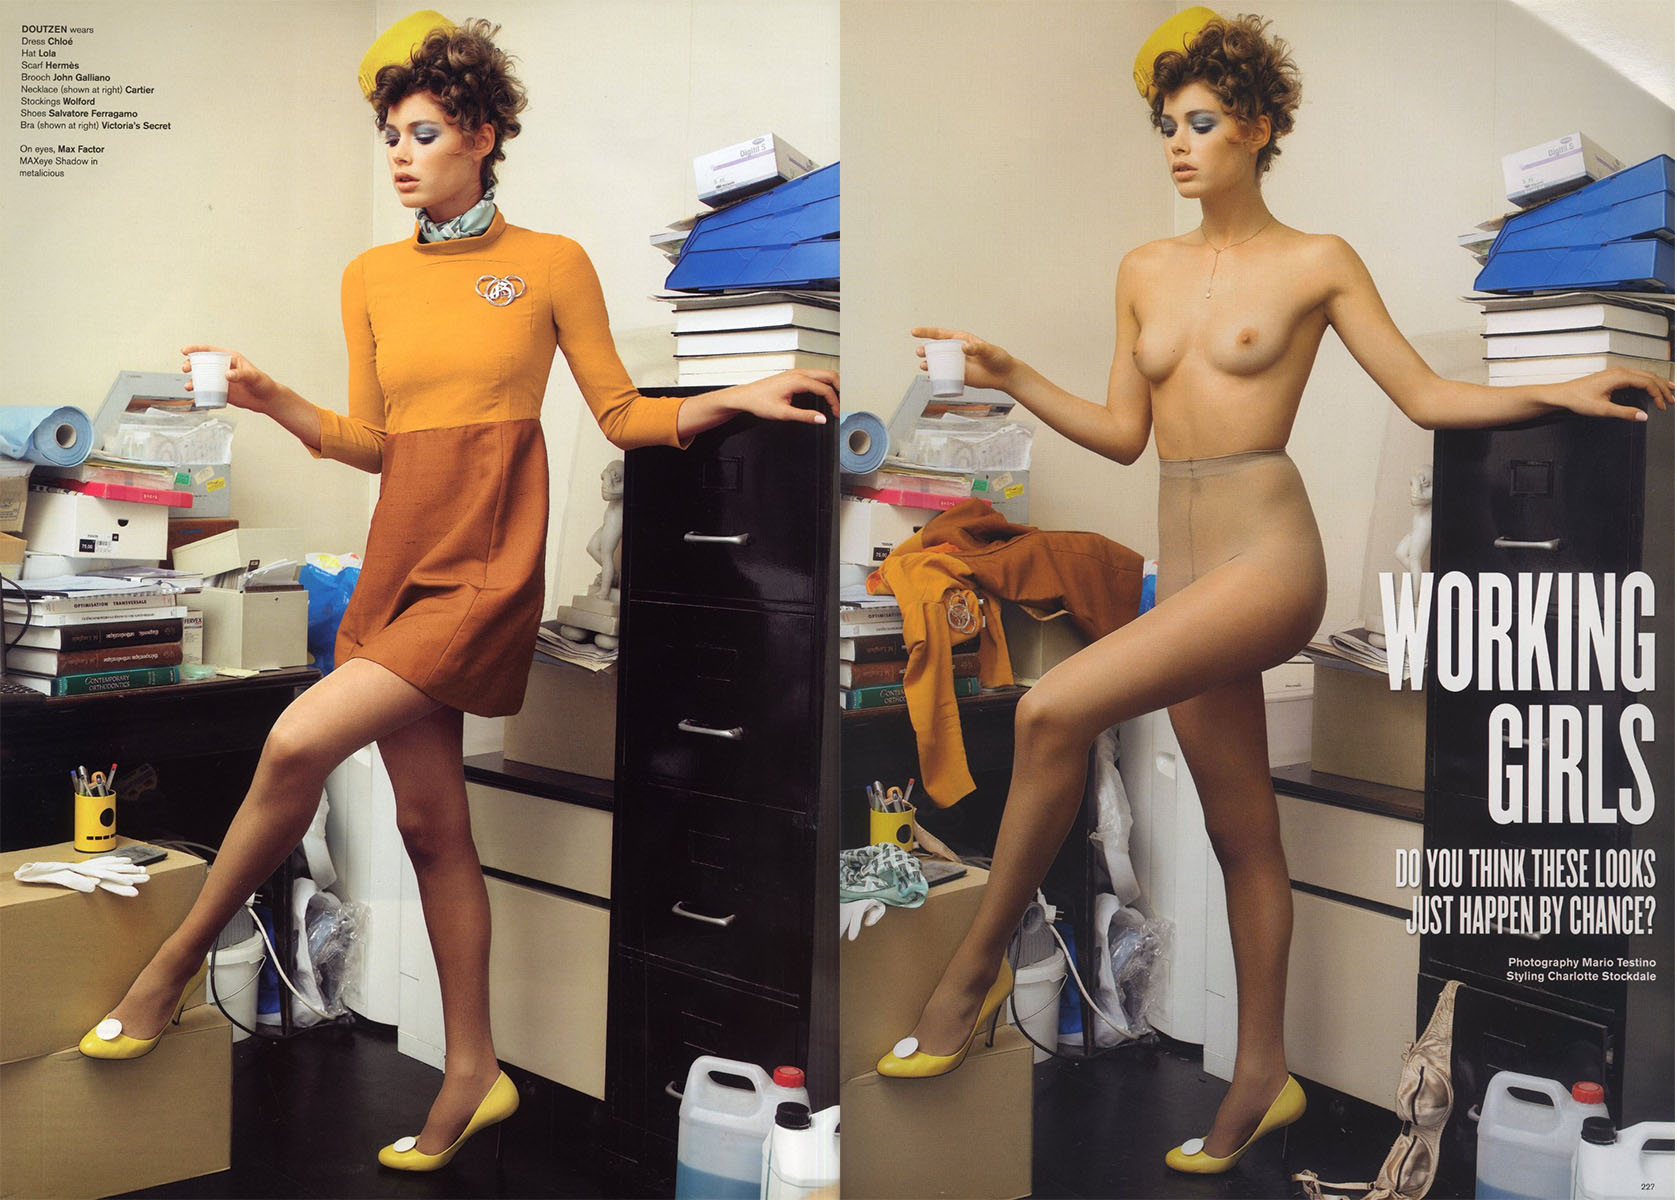 working girls photography mario testino v 46 spring 2007 1 2